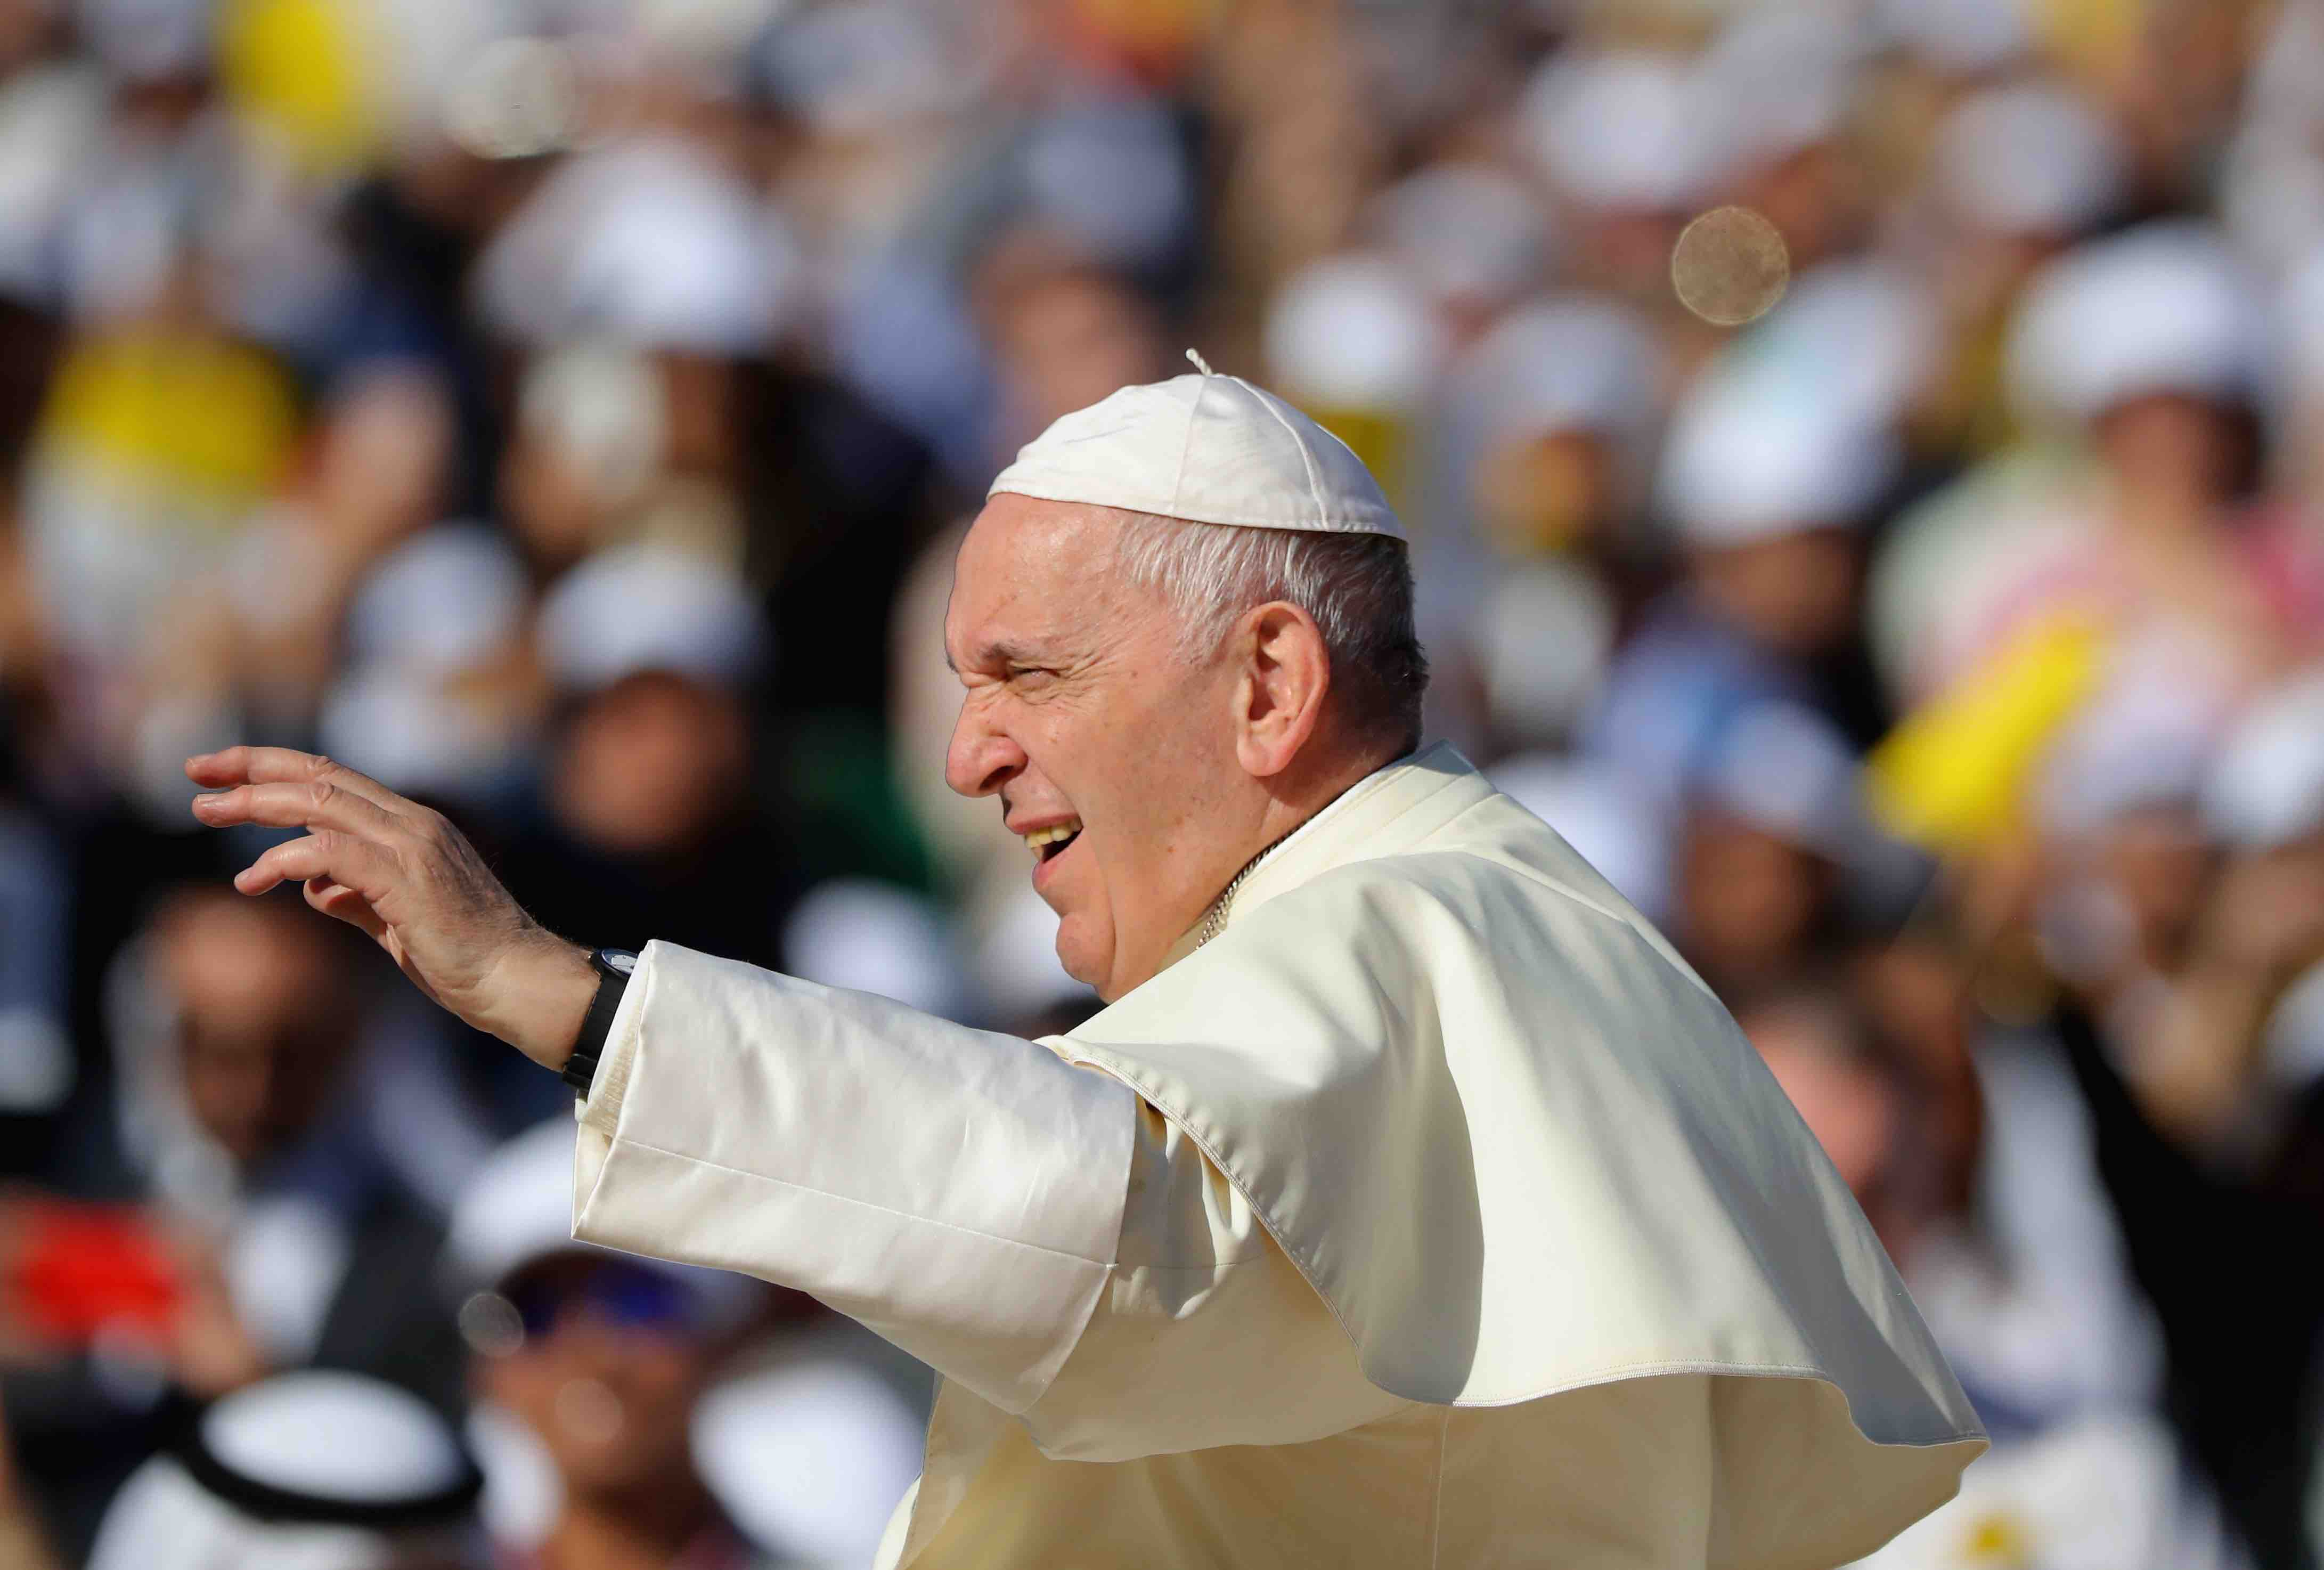 Pope Francis Says Mexico Is Being Punished by the Devil